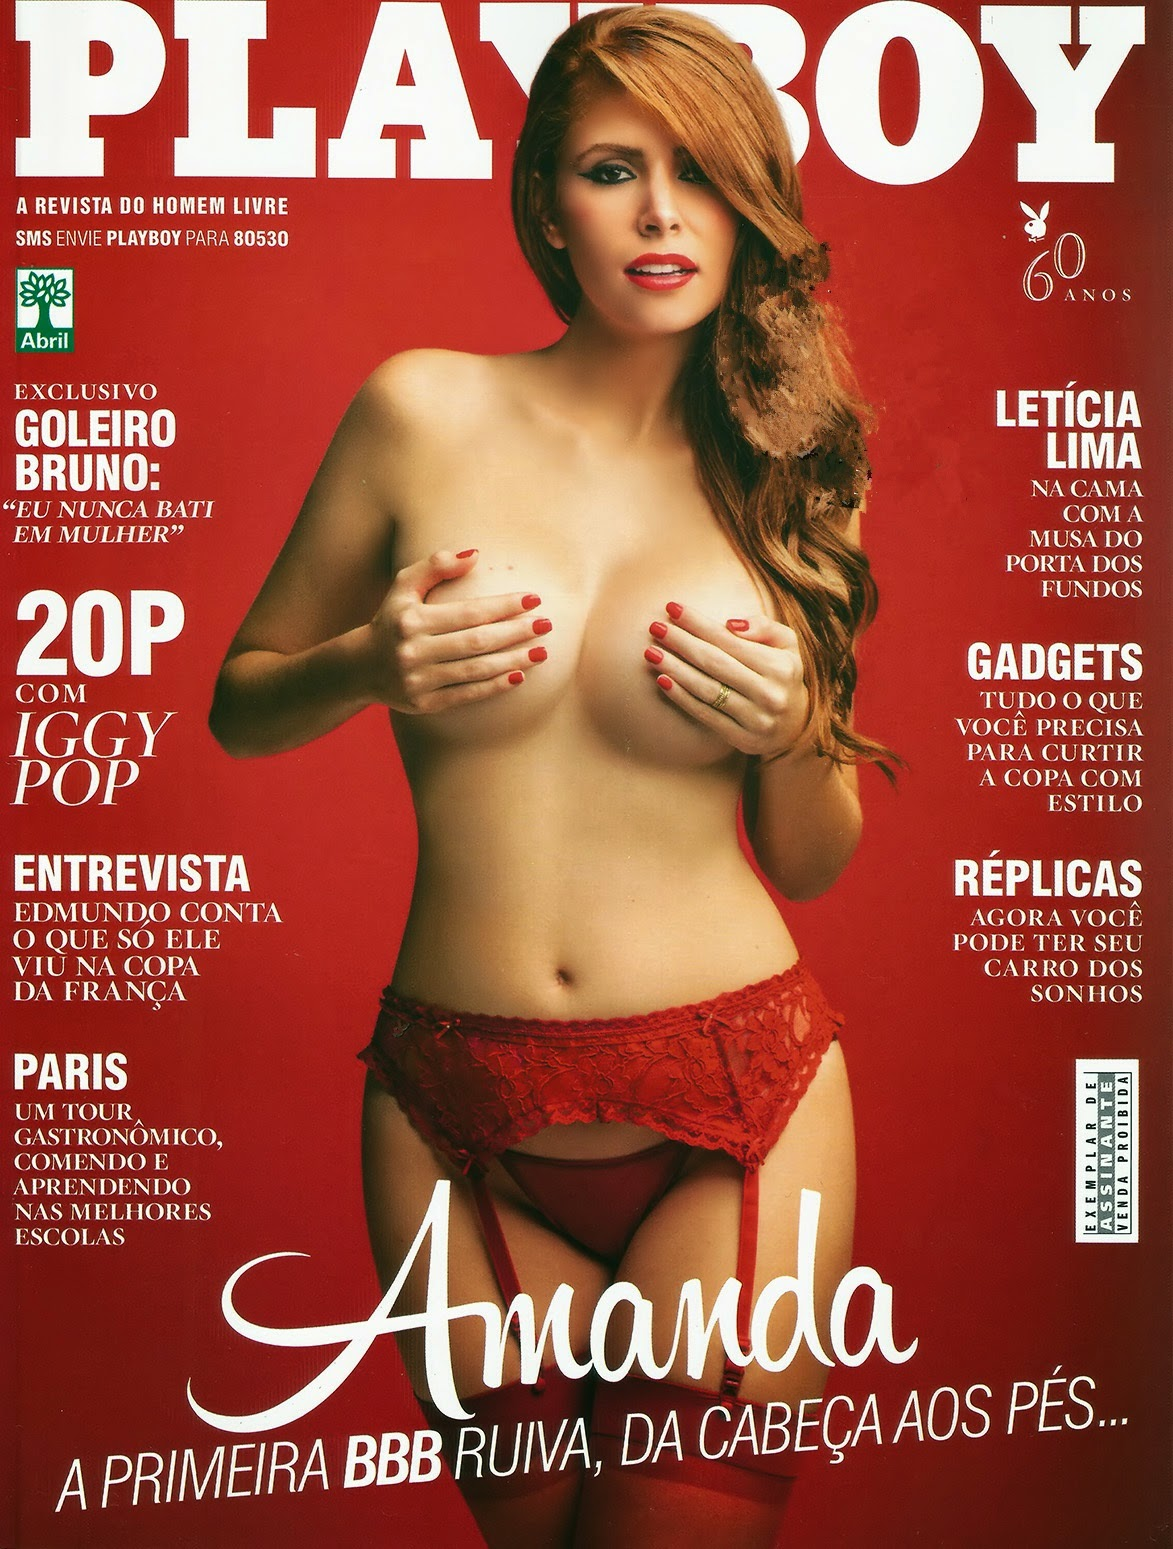 00 Download Revista Playboy Amanda Gontijo Maio 2014